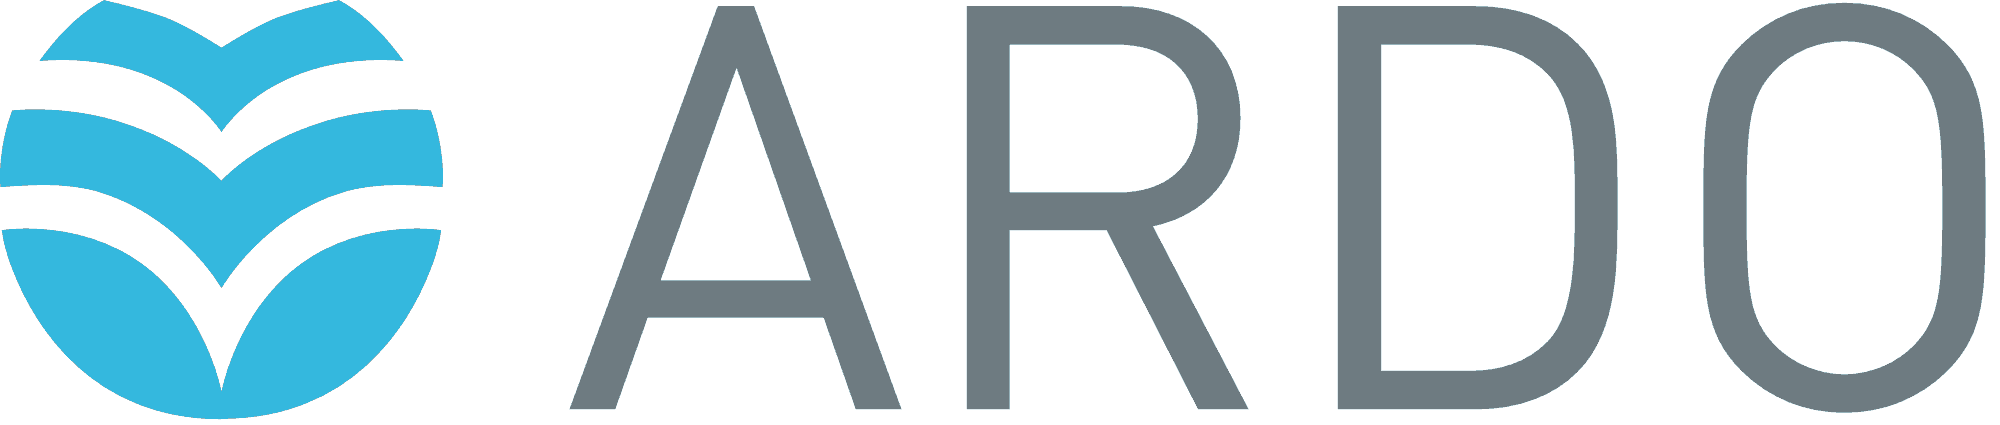 ARDO Logo Transparent